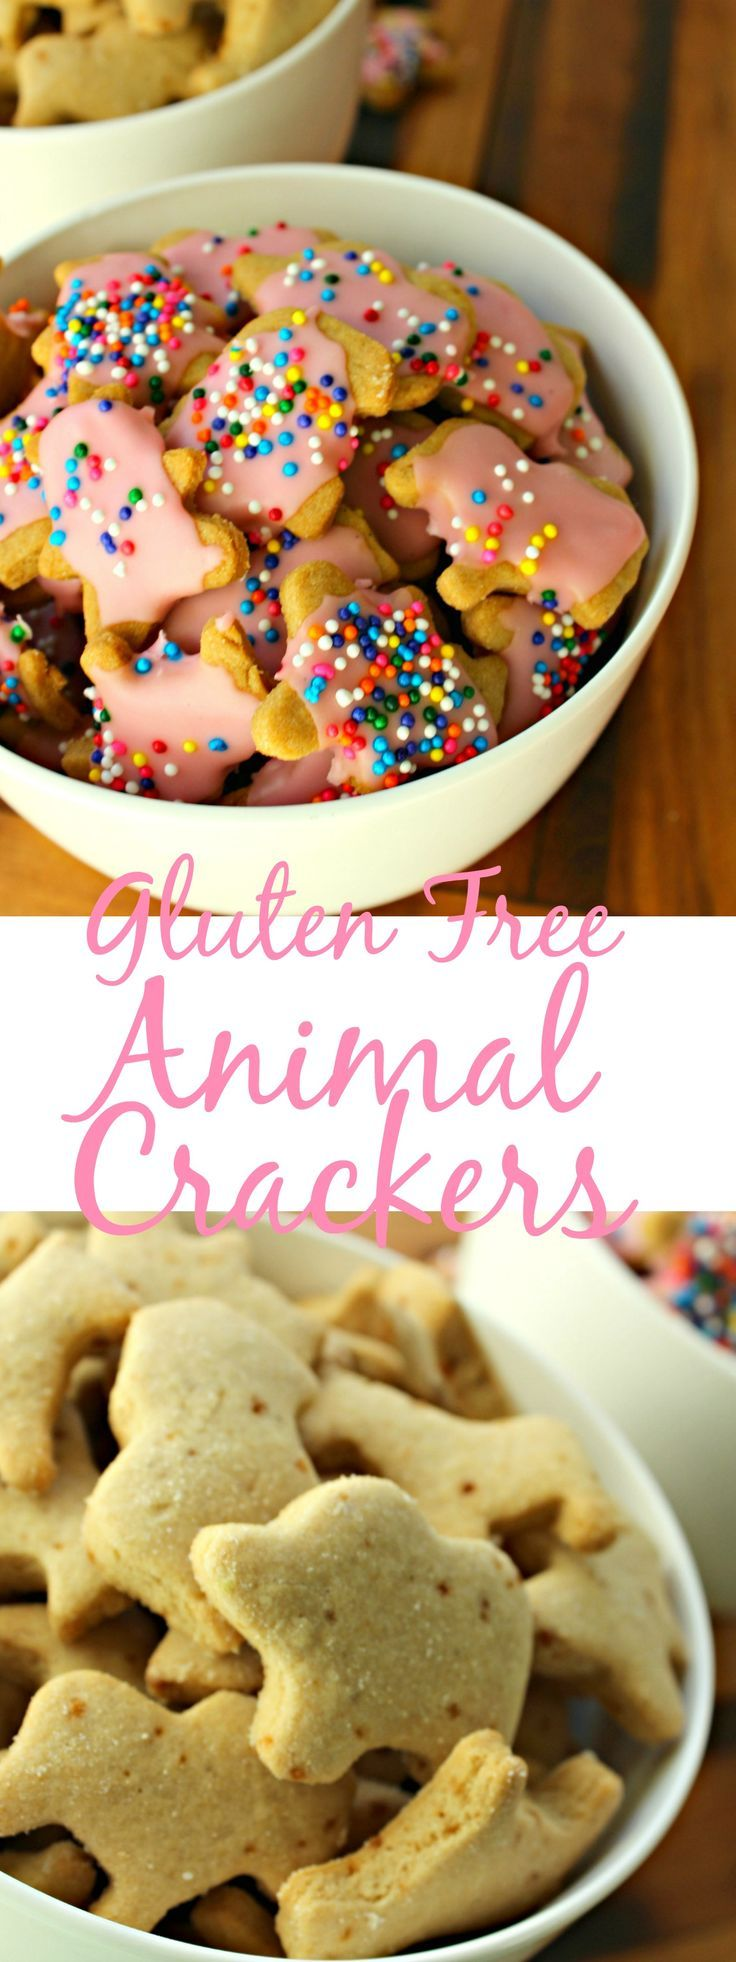 Bring yourself back to your childhood with these fun little animal crackers that are so easy to make and the best is they are gluten free for everyone! | gluten free snacks | gluten free animal crackers | animal crackers | snacks | gluten free | kids snacks | easy to make gluten free snacks | easy to make snacks |